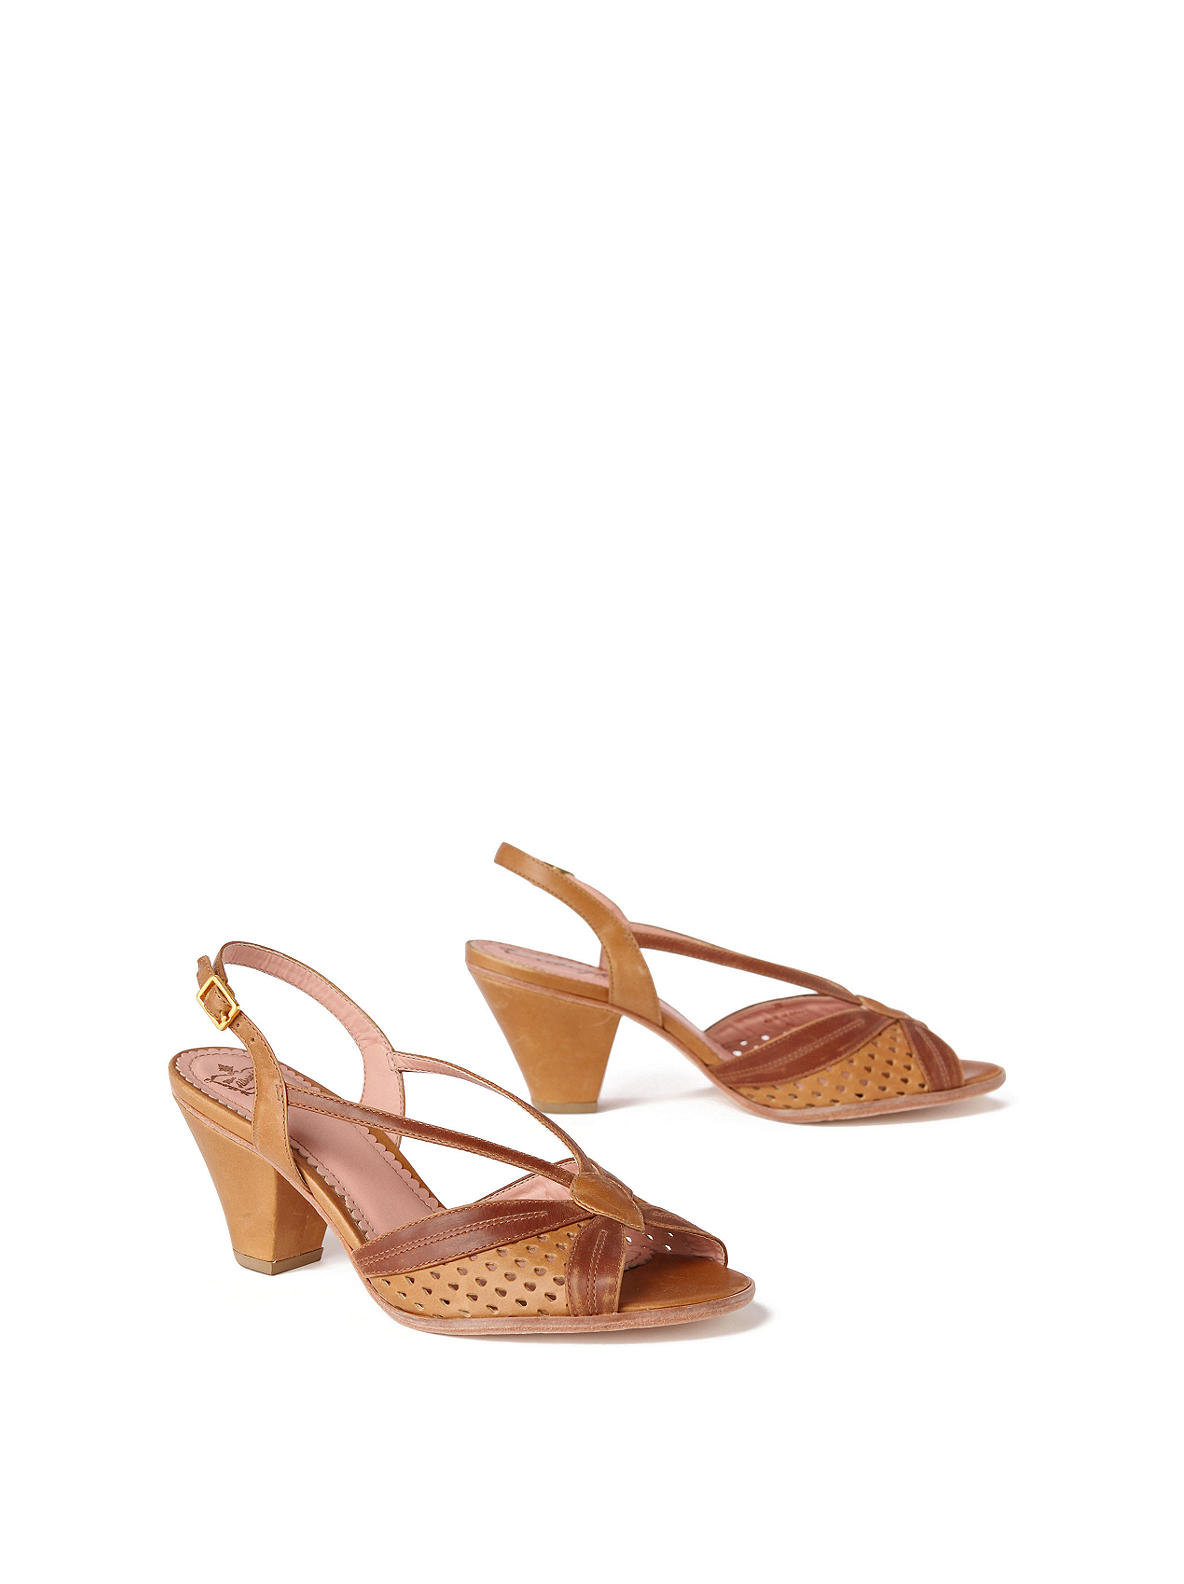 Clouded Apollo Heels - Anthropologie.com :  miss albright anthropologie heels sandals